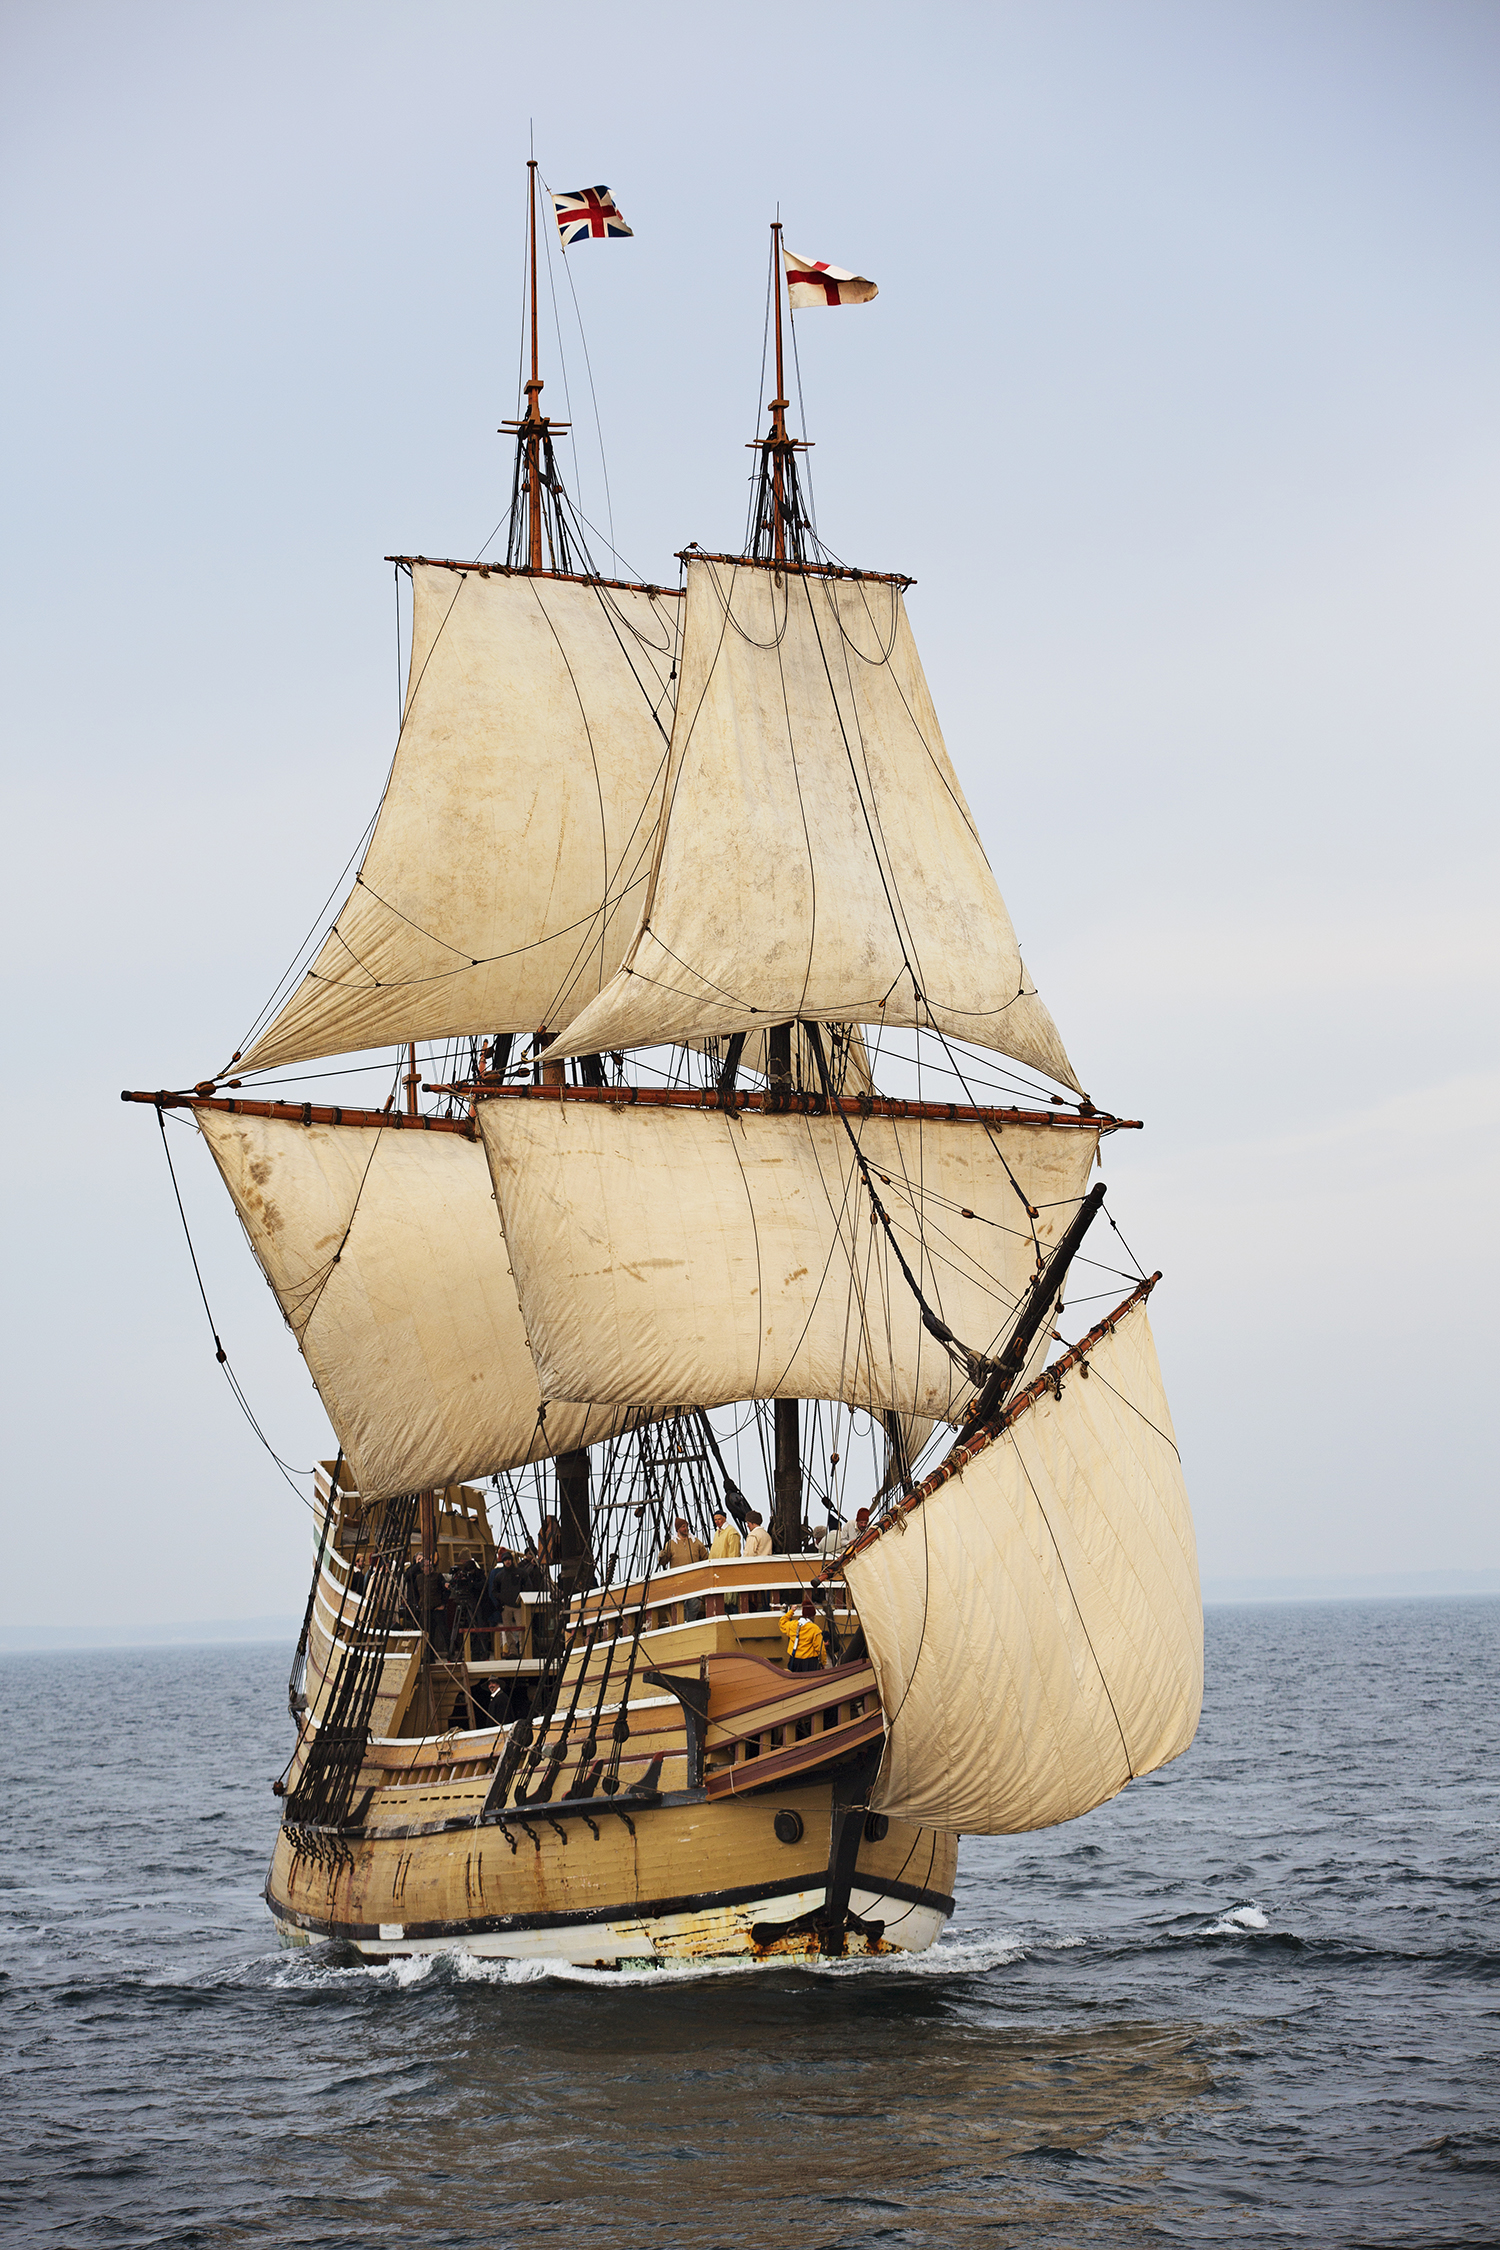 Plimoth Plantation to Launch Mayflower II at Mystic Seaport Museum on September 7